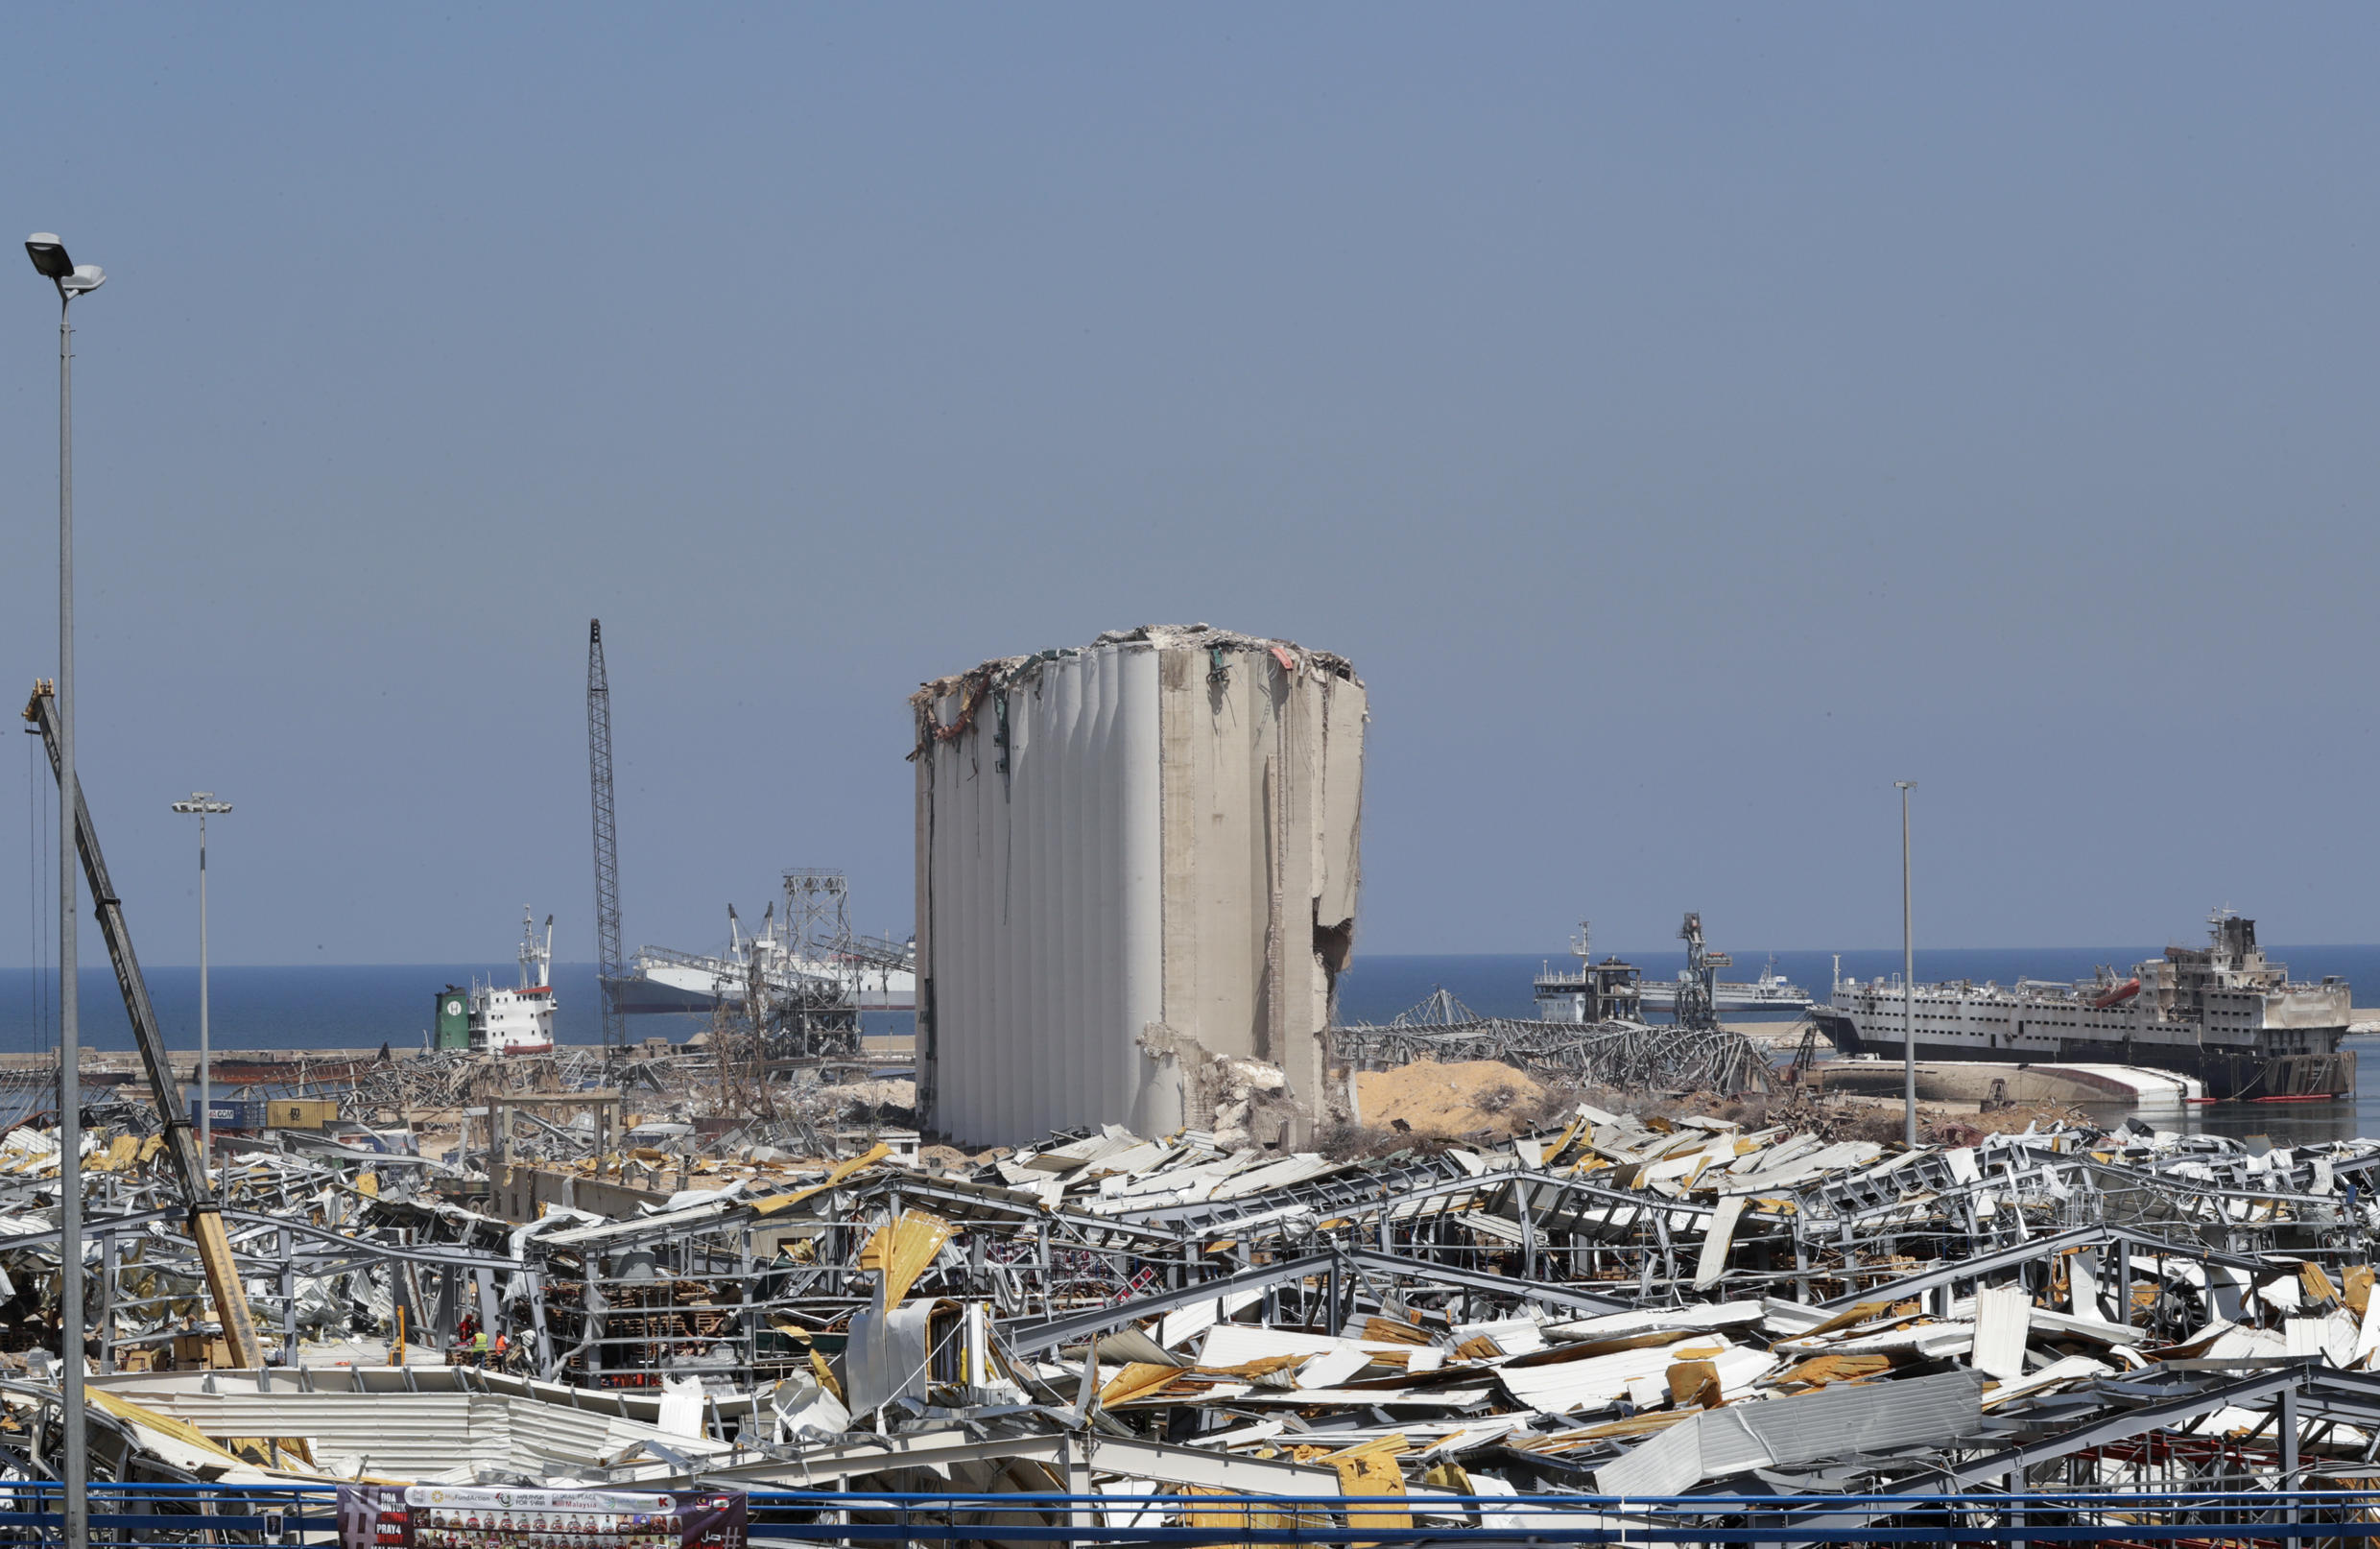 Destruction at Beirut port after the mega-blast that ravaged swathes of the Lebanese capital on August 4